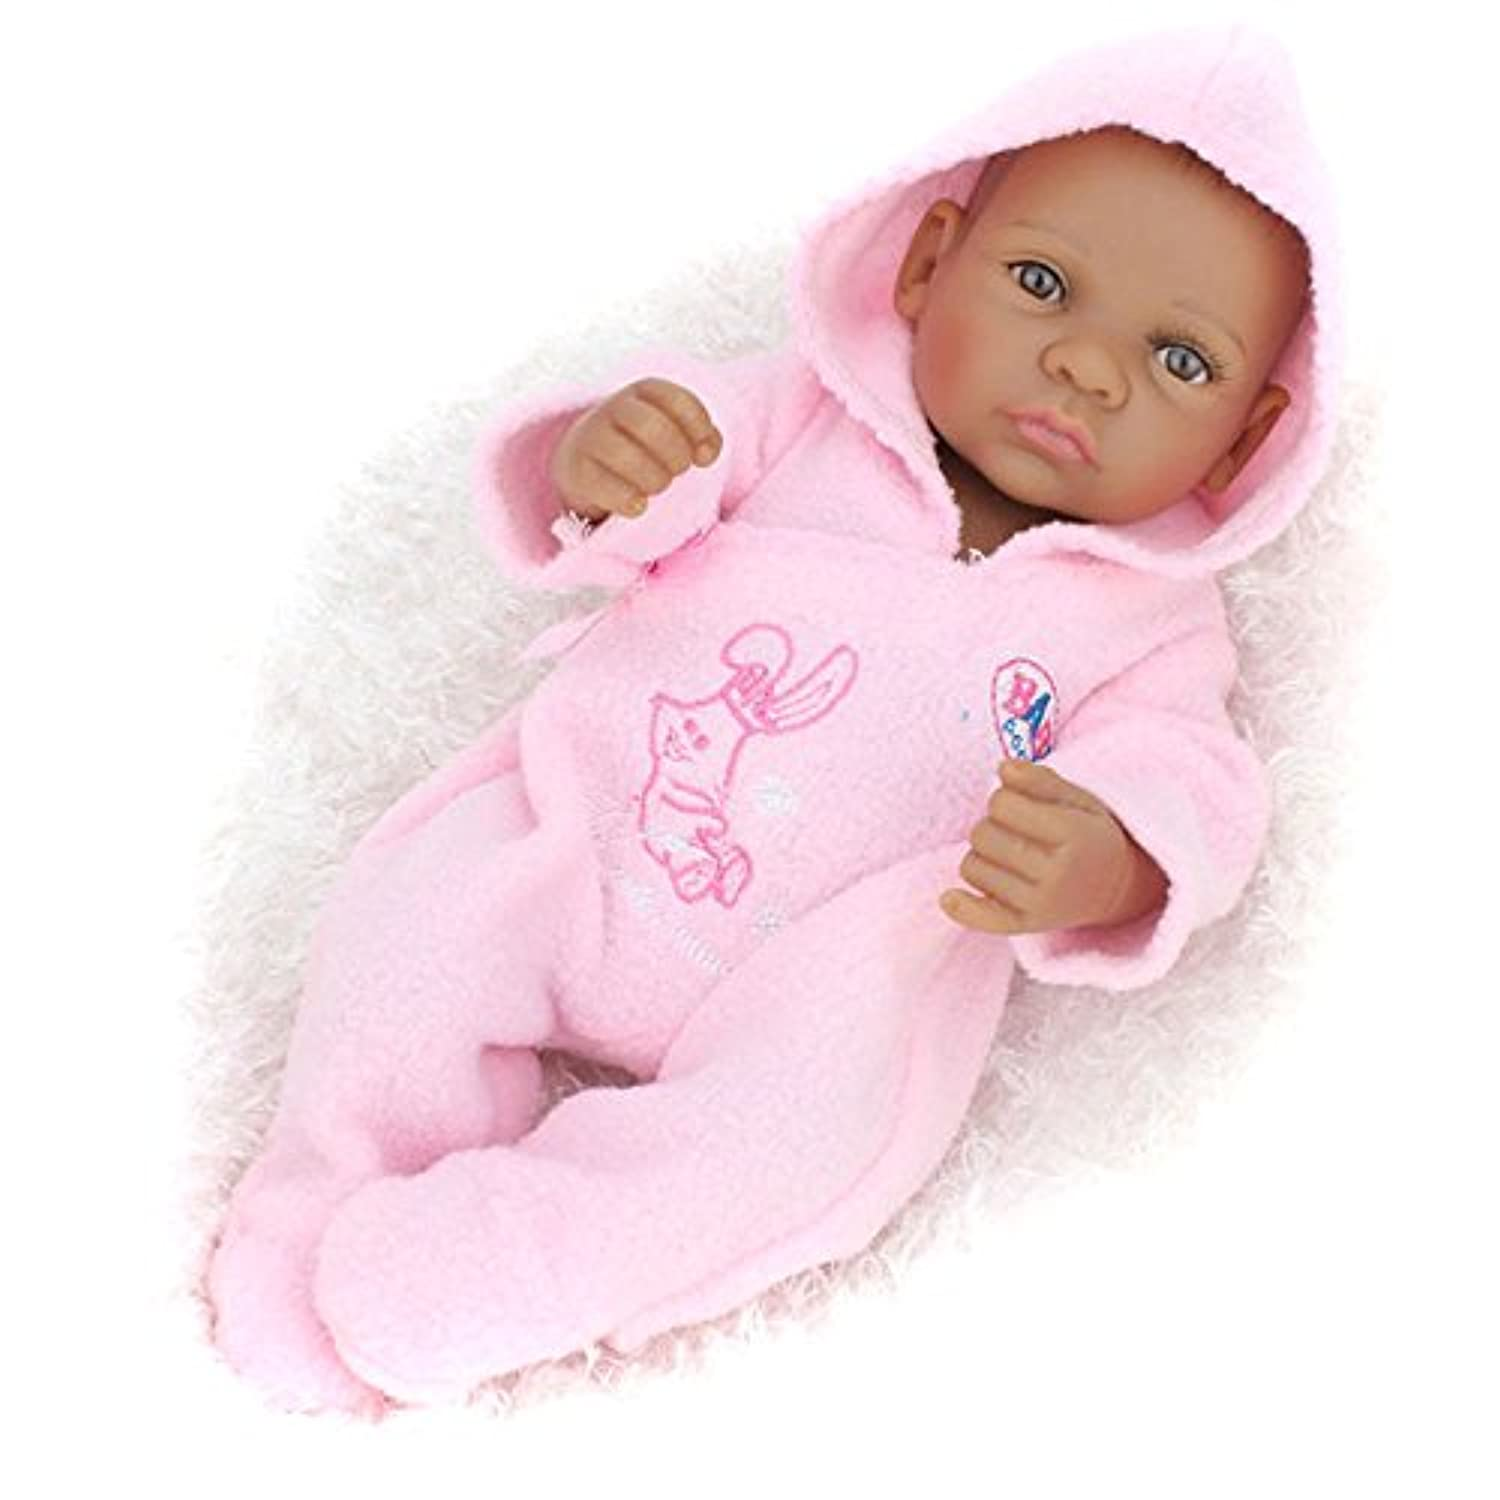 African American Reborn Baby Dolls Black Girls Looking Real Babies Toys for Boys Girls Kids